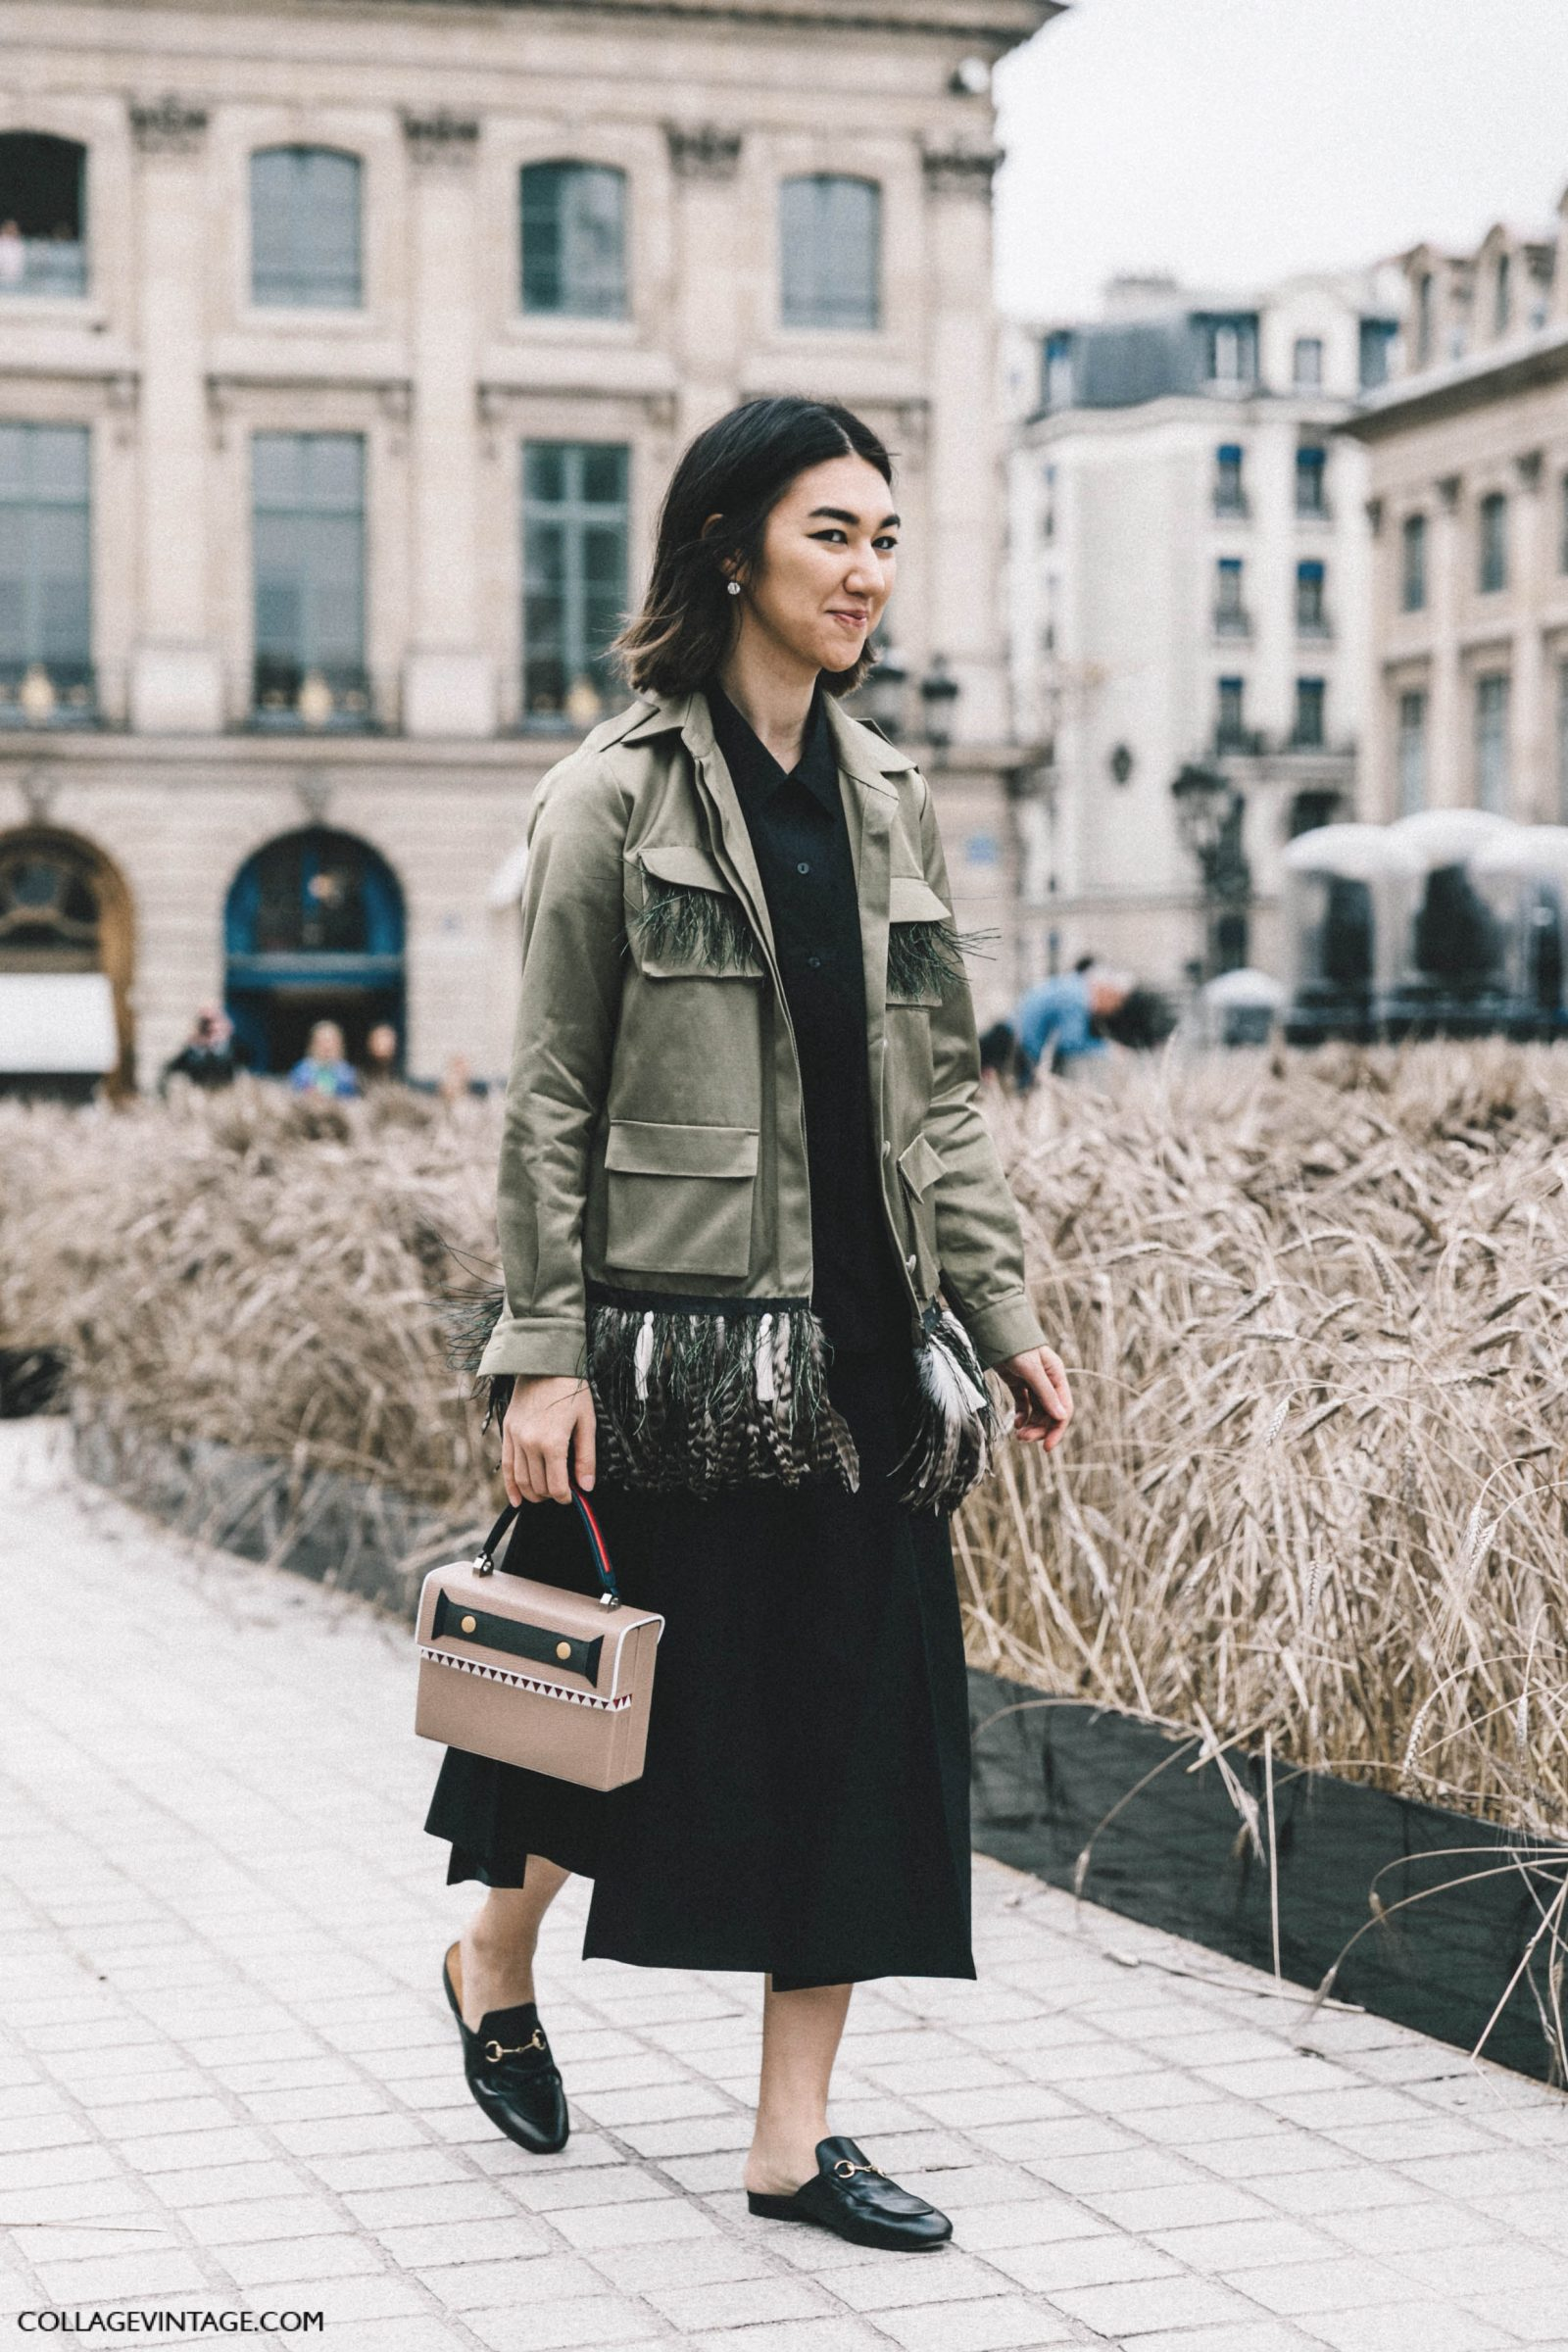 Paris_Couture_Fashion_Week-Collage_Vintage-Street_Style-17